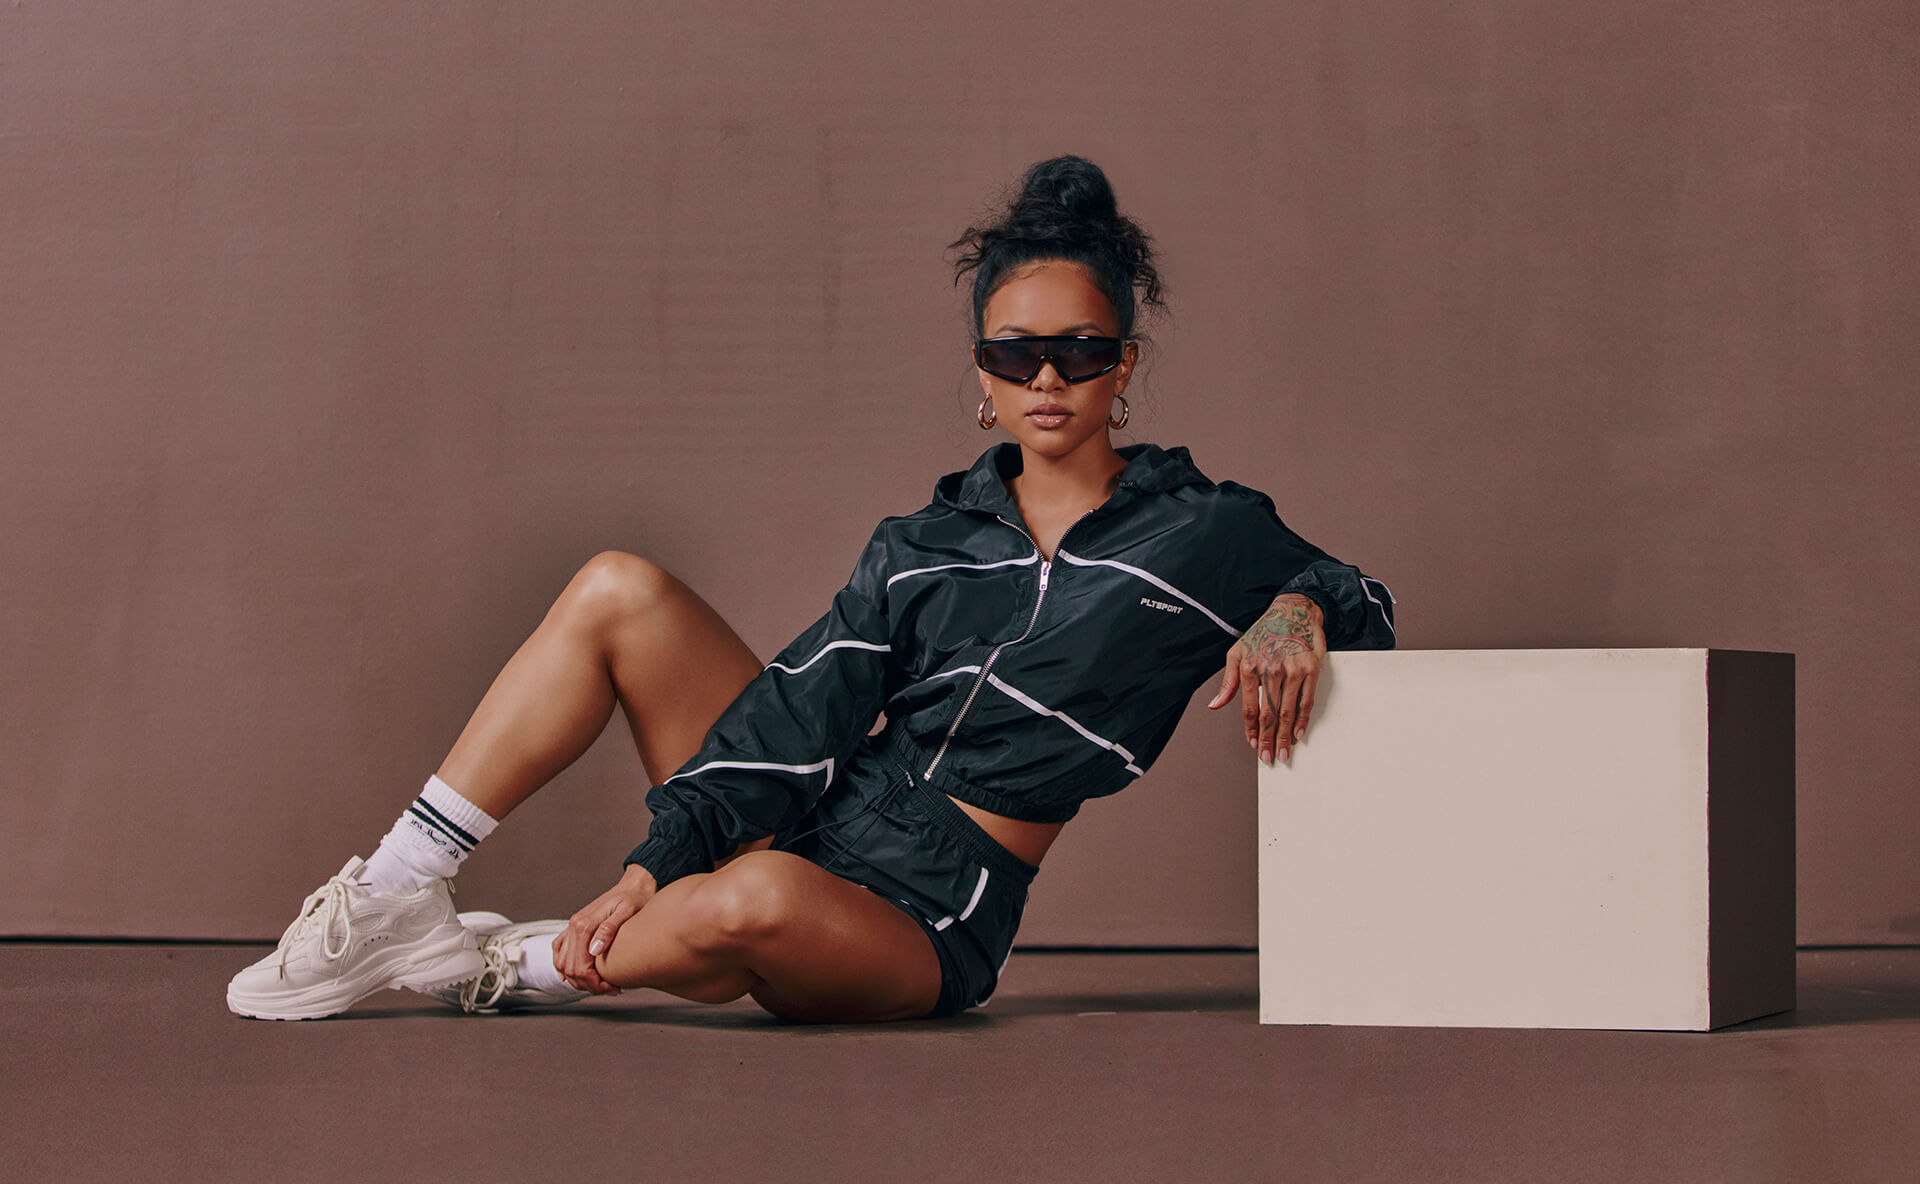 Karrueche Lookbook Image 2 Desktop